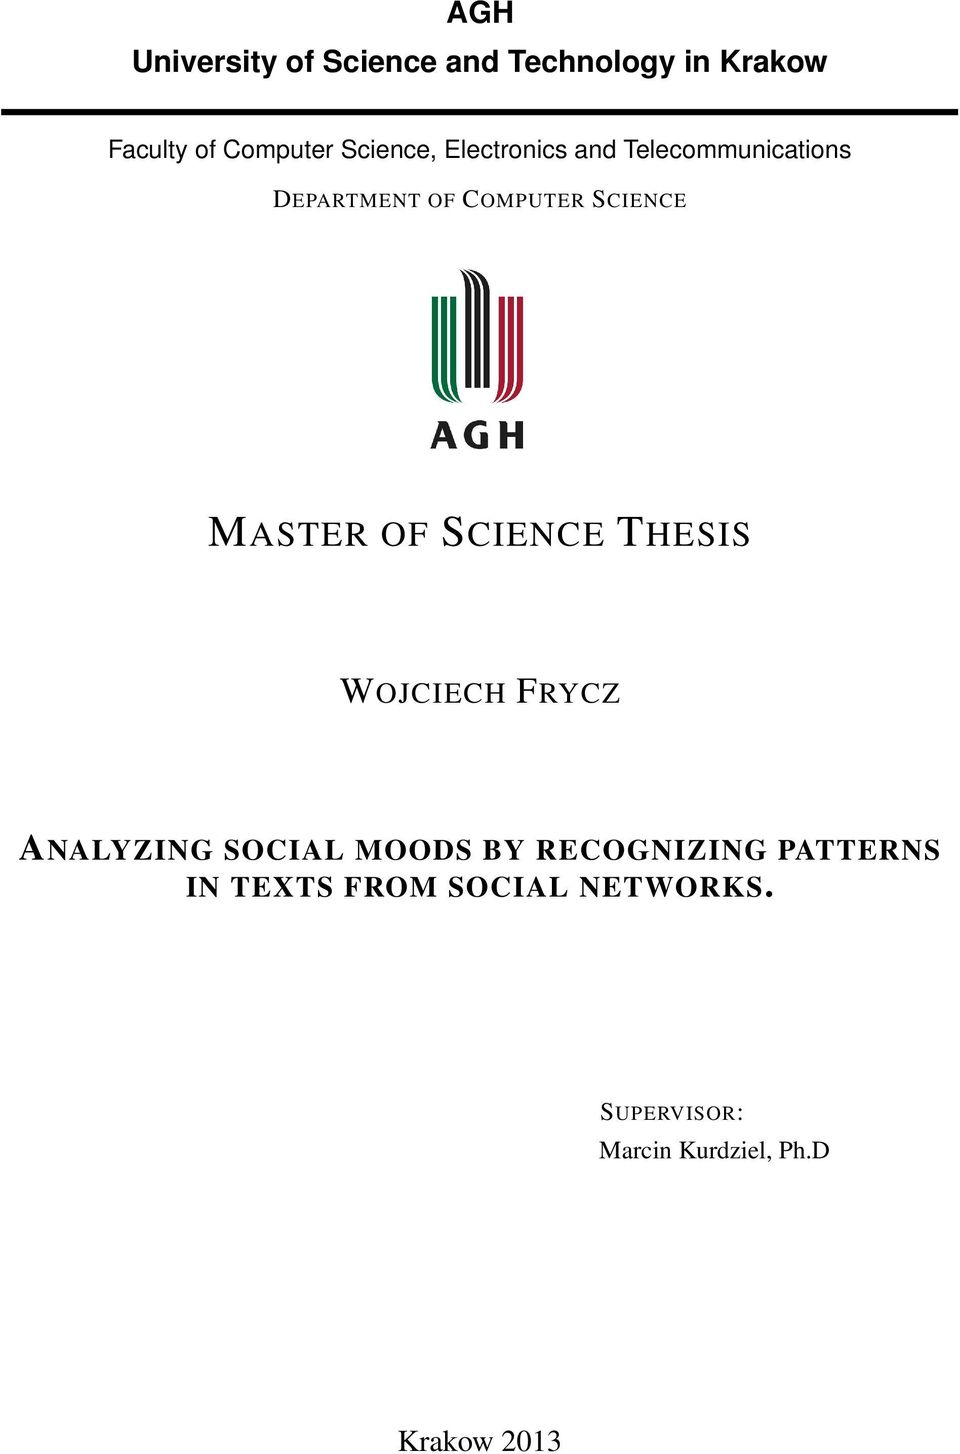 MASTER OF SCIENCE THESIS WOJCIECH FRYCZ ANALYZING SOCIAL MOODS BY RECOGNIZING